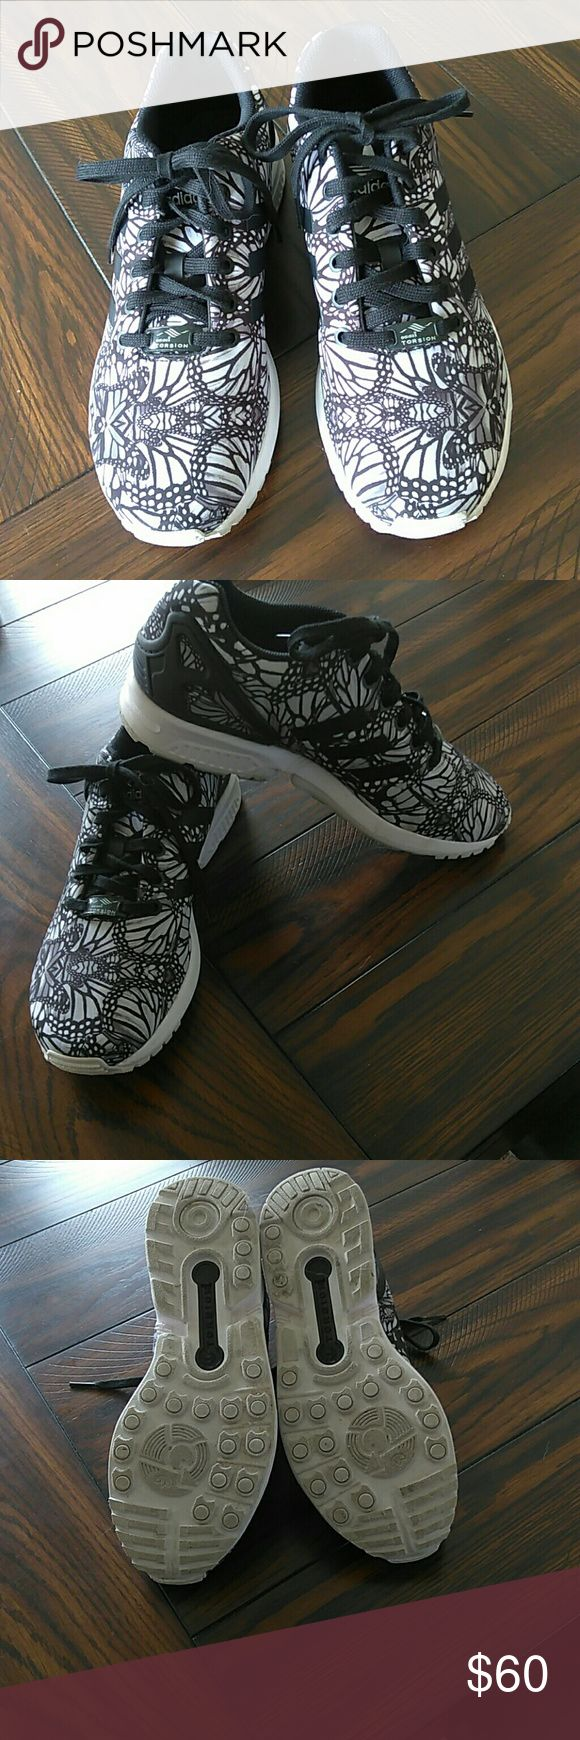 Adidas Torsion ZX Flux Butterfly Black and white with a cute butterfly print. Excellent condition! Signature three black stripes on sides! Super cute and fashionable! Don't pass these up! Adidas Shoes Athletic Shoes